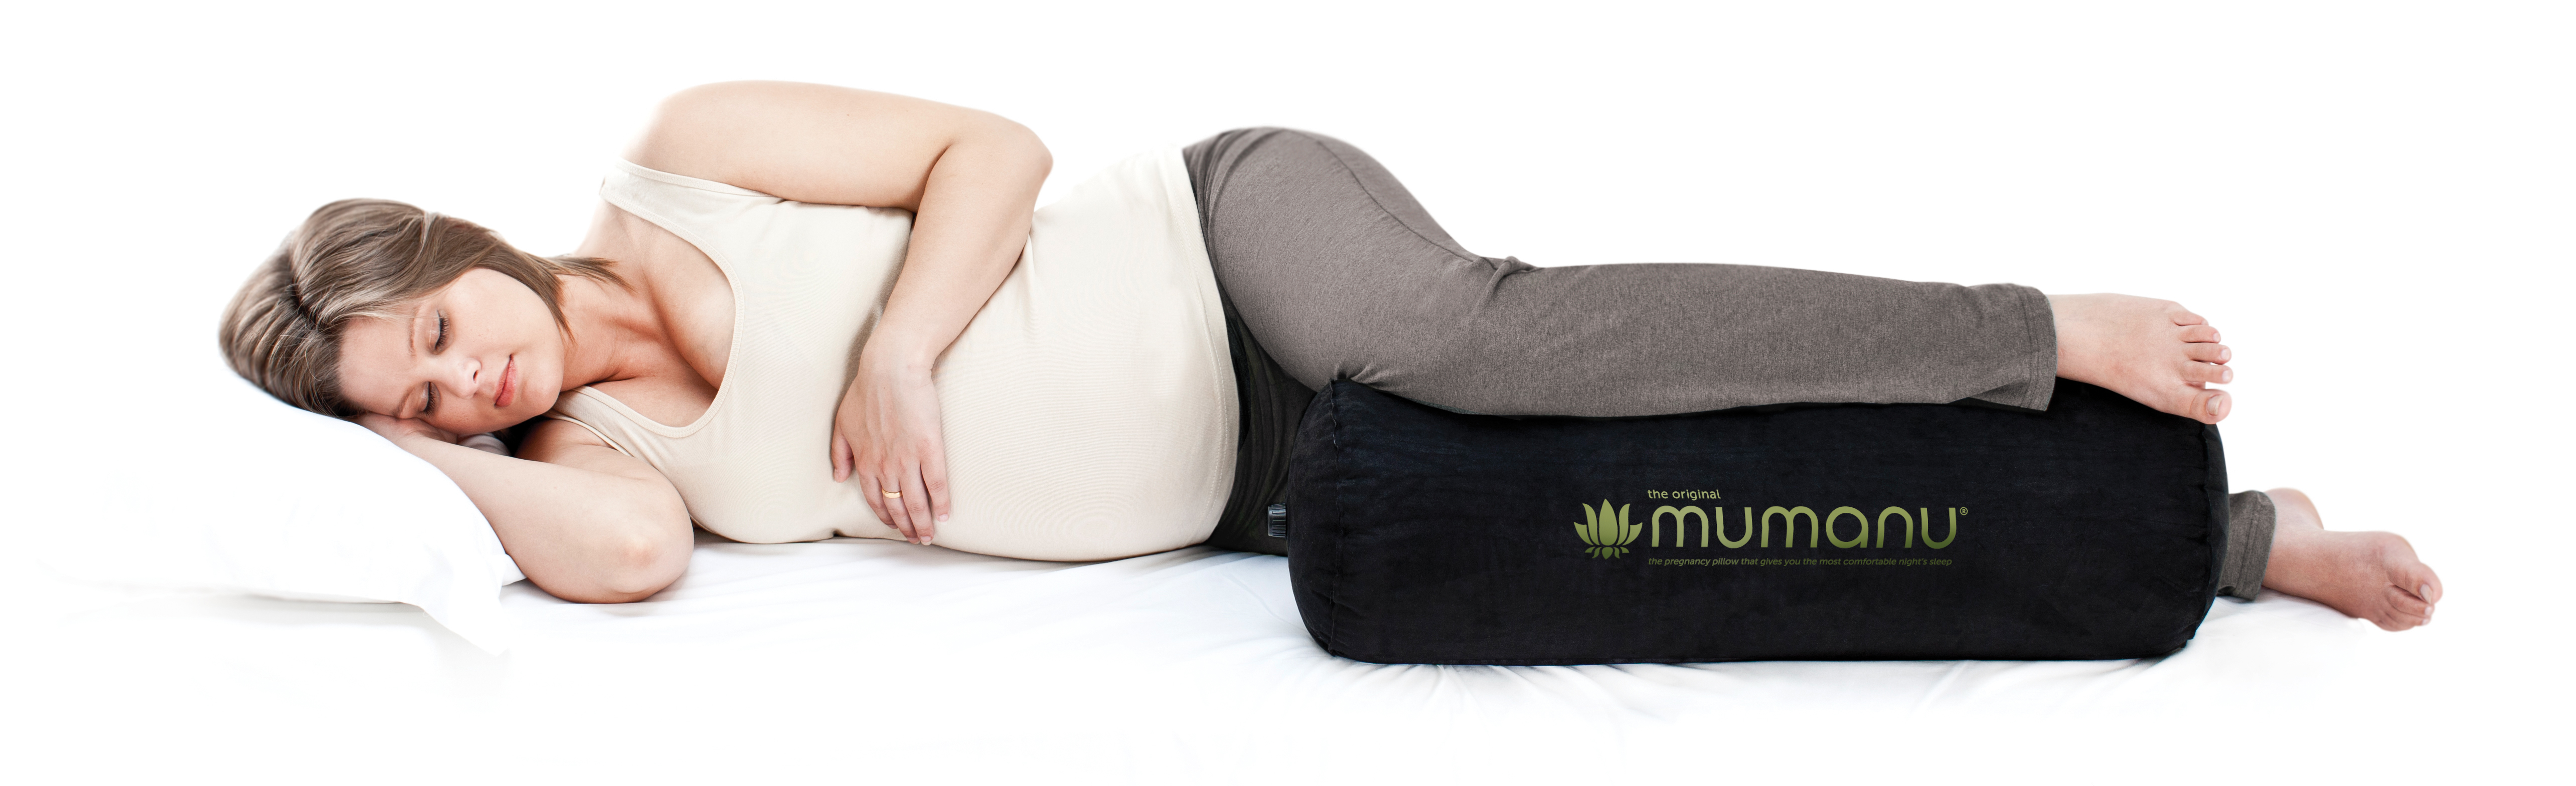 Best Pillow For Sleeping On Your Back The Most Comfortable Pregnancy Sleeping Position Mumanu